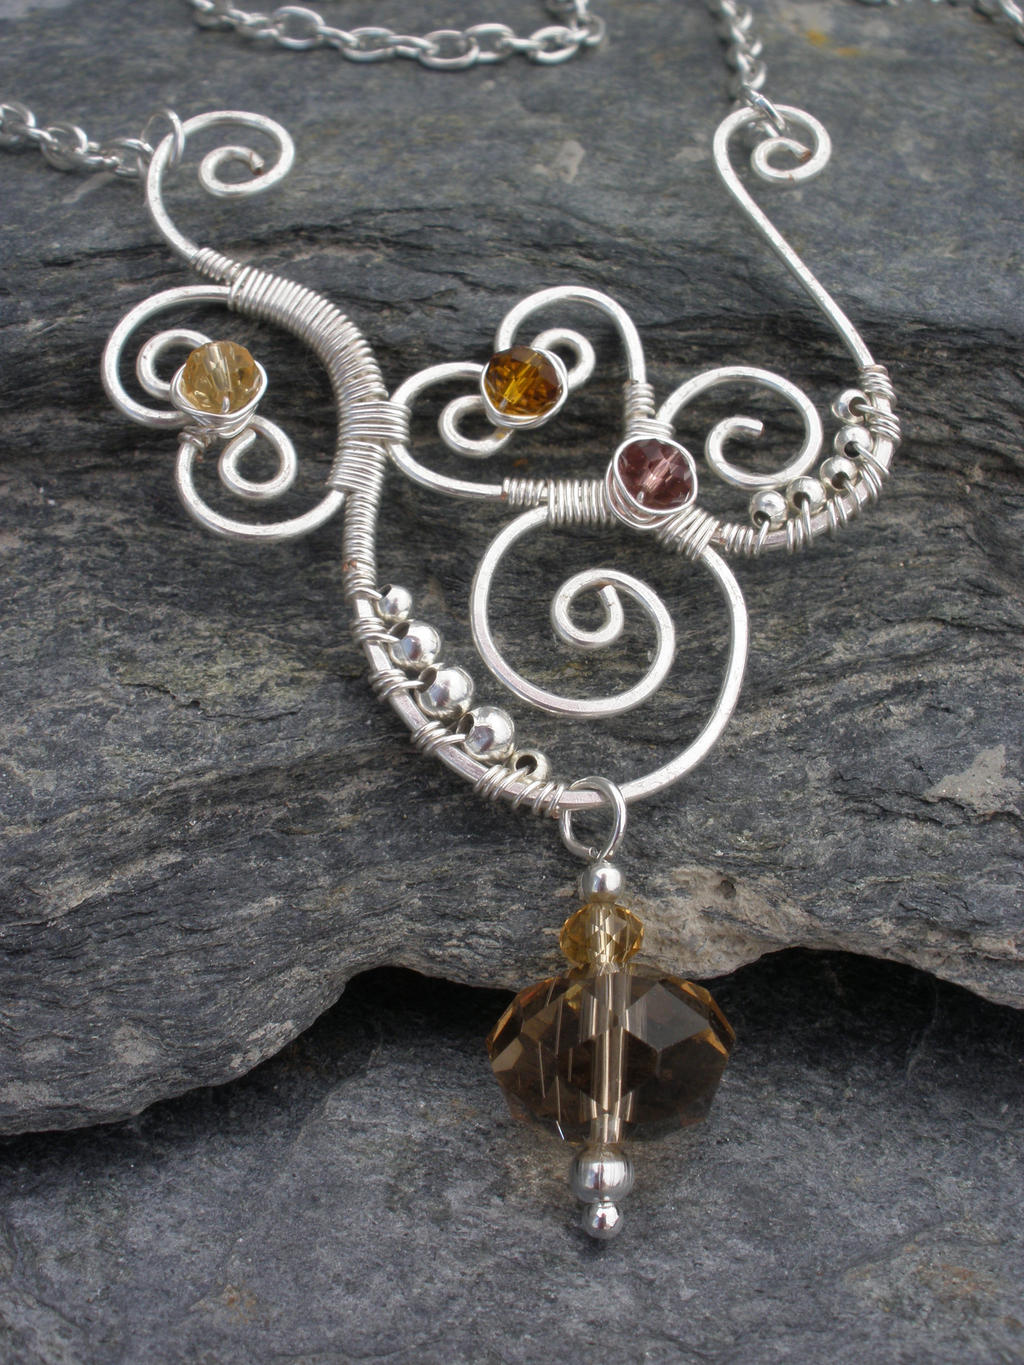 Wire wrapped necklace with Czech Glass Crystals by ChloeLB on DeviantArt